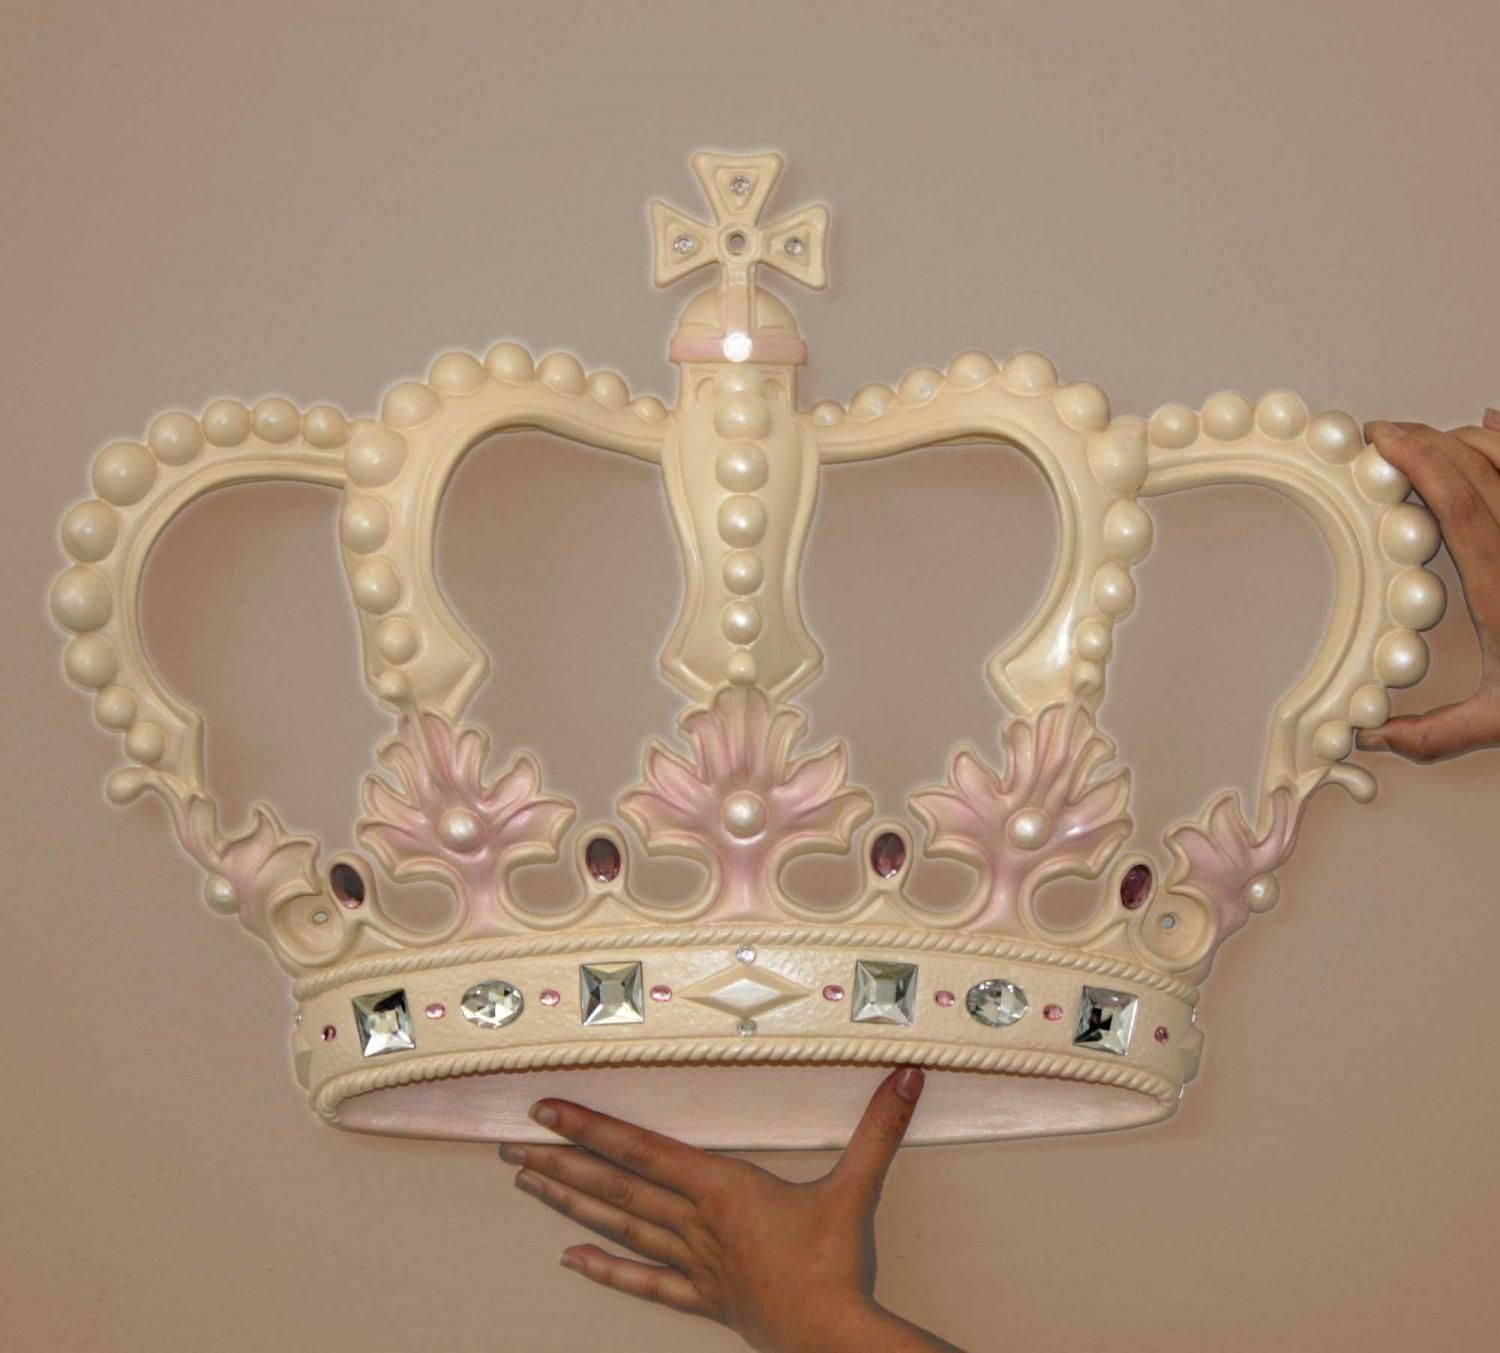 Cream Pink Princess Crown 3d Wall Art Decor By Beetling Design Php Princess